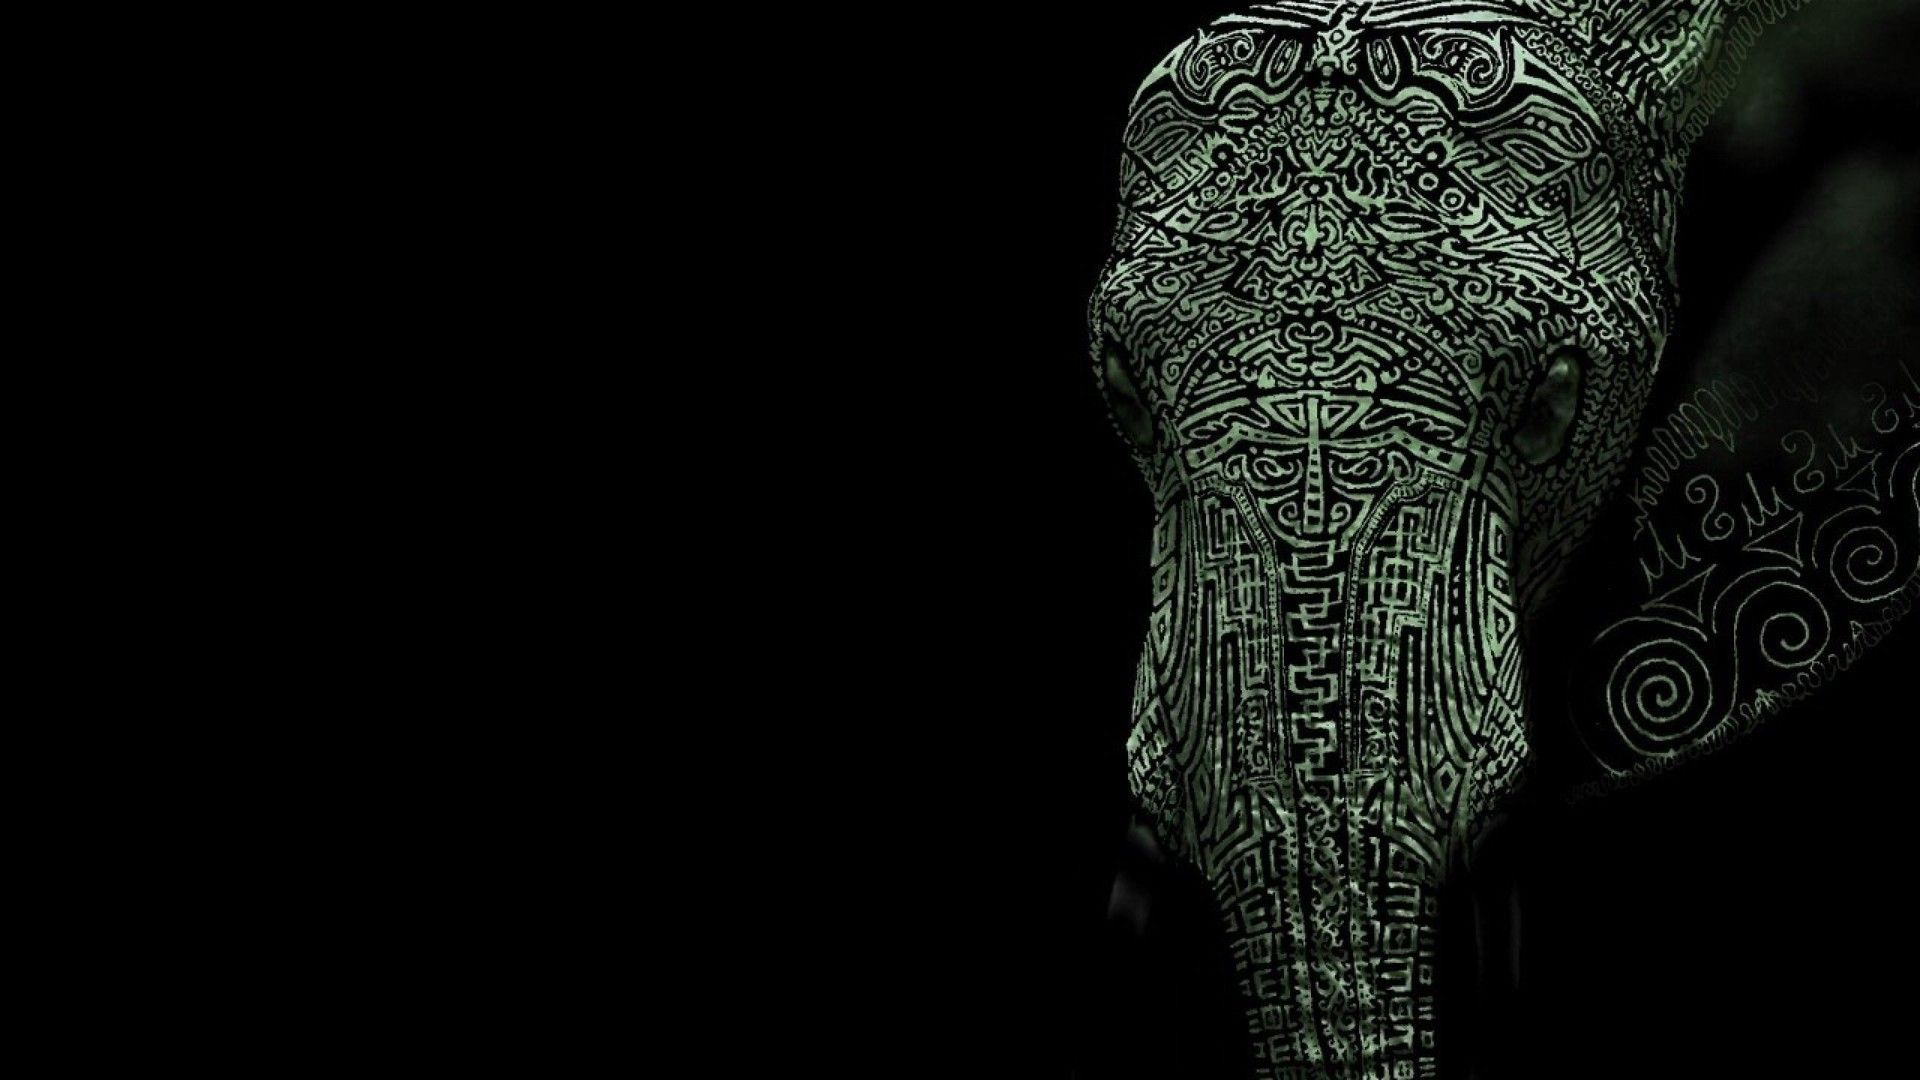 Elephant Art Wallpaper Wide Papeis De Parede Para Iphone 1080p